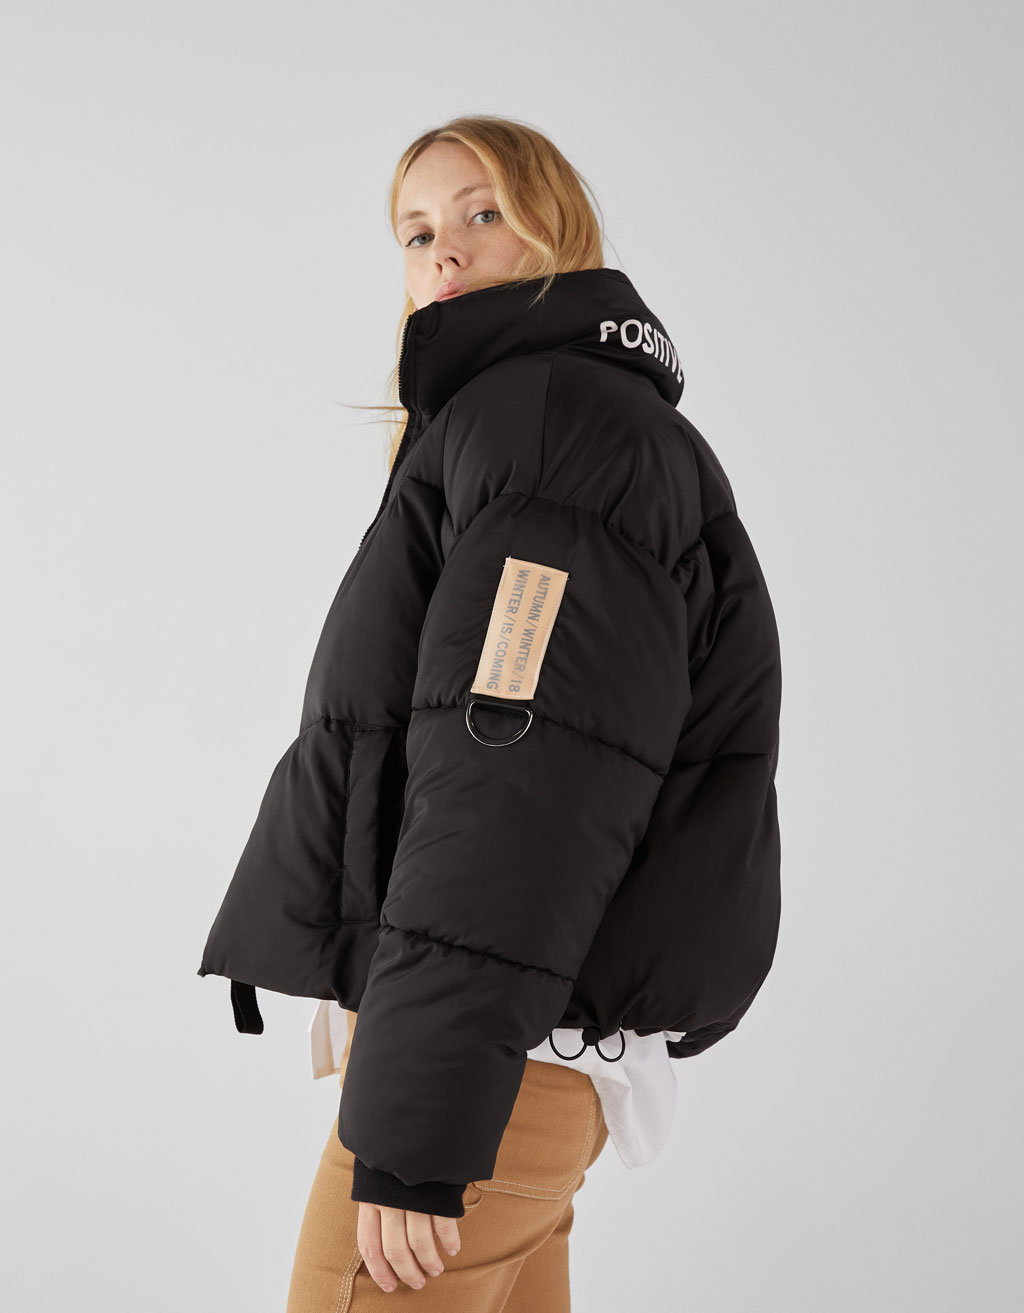 Oversized puffer coat with slogan on the neckline